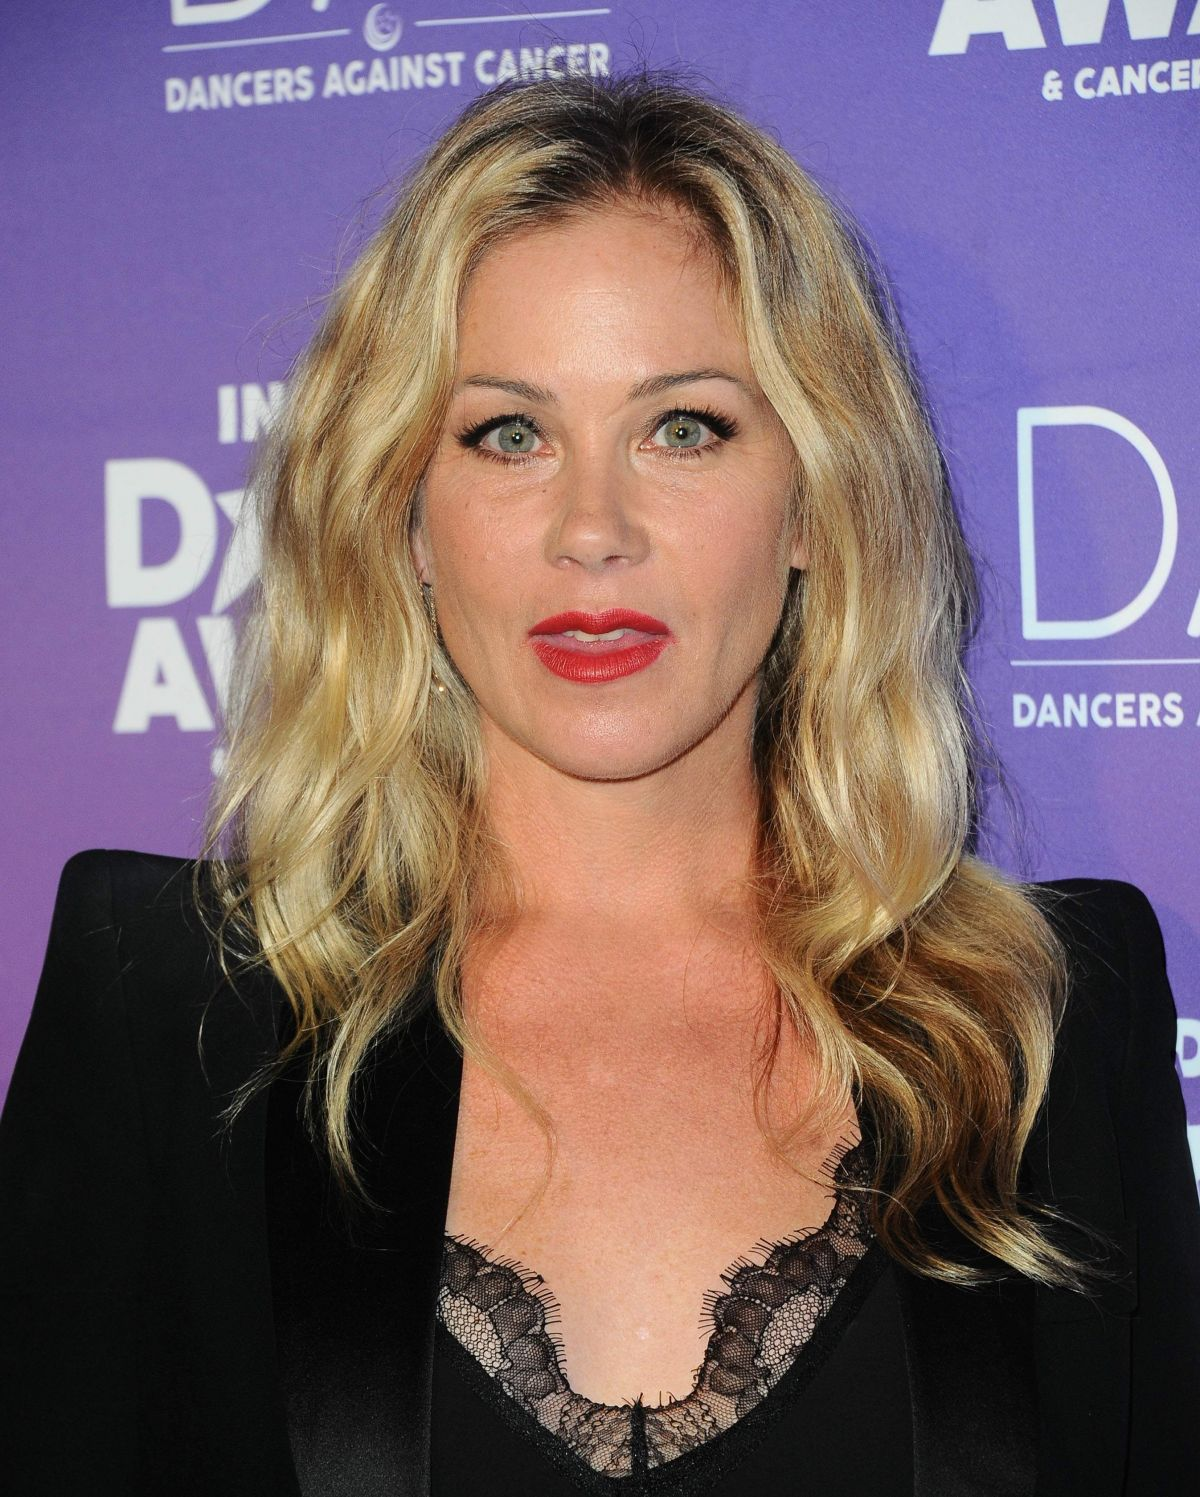 CHRISTINA APPLEGATE at Industry Dance Awards in Hollywood 08/16/2017